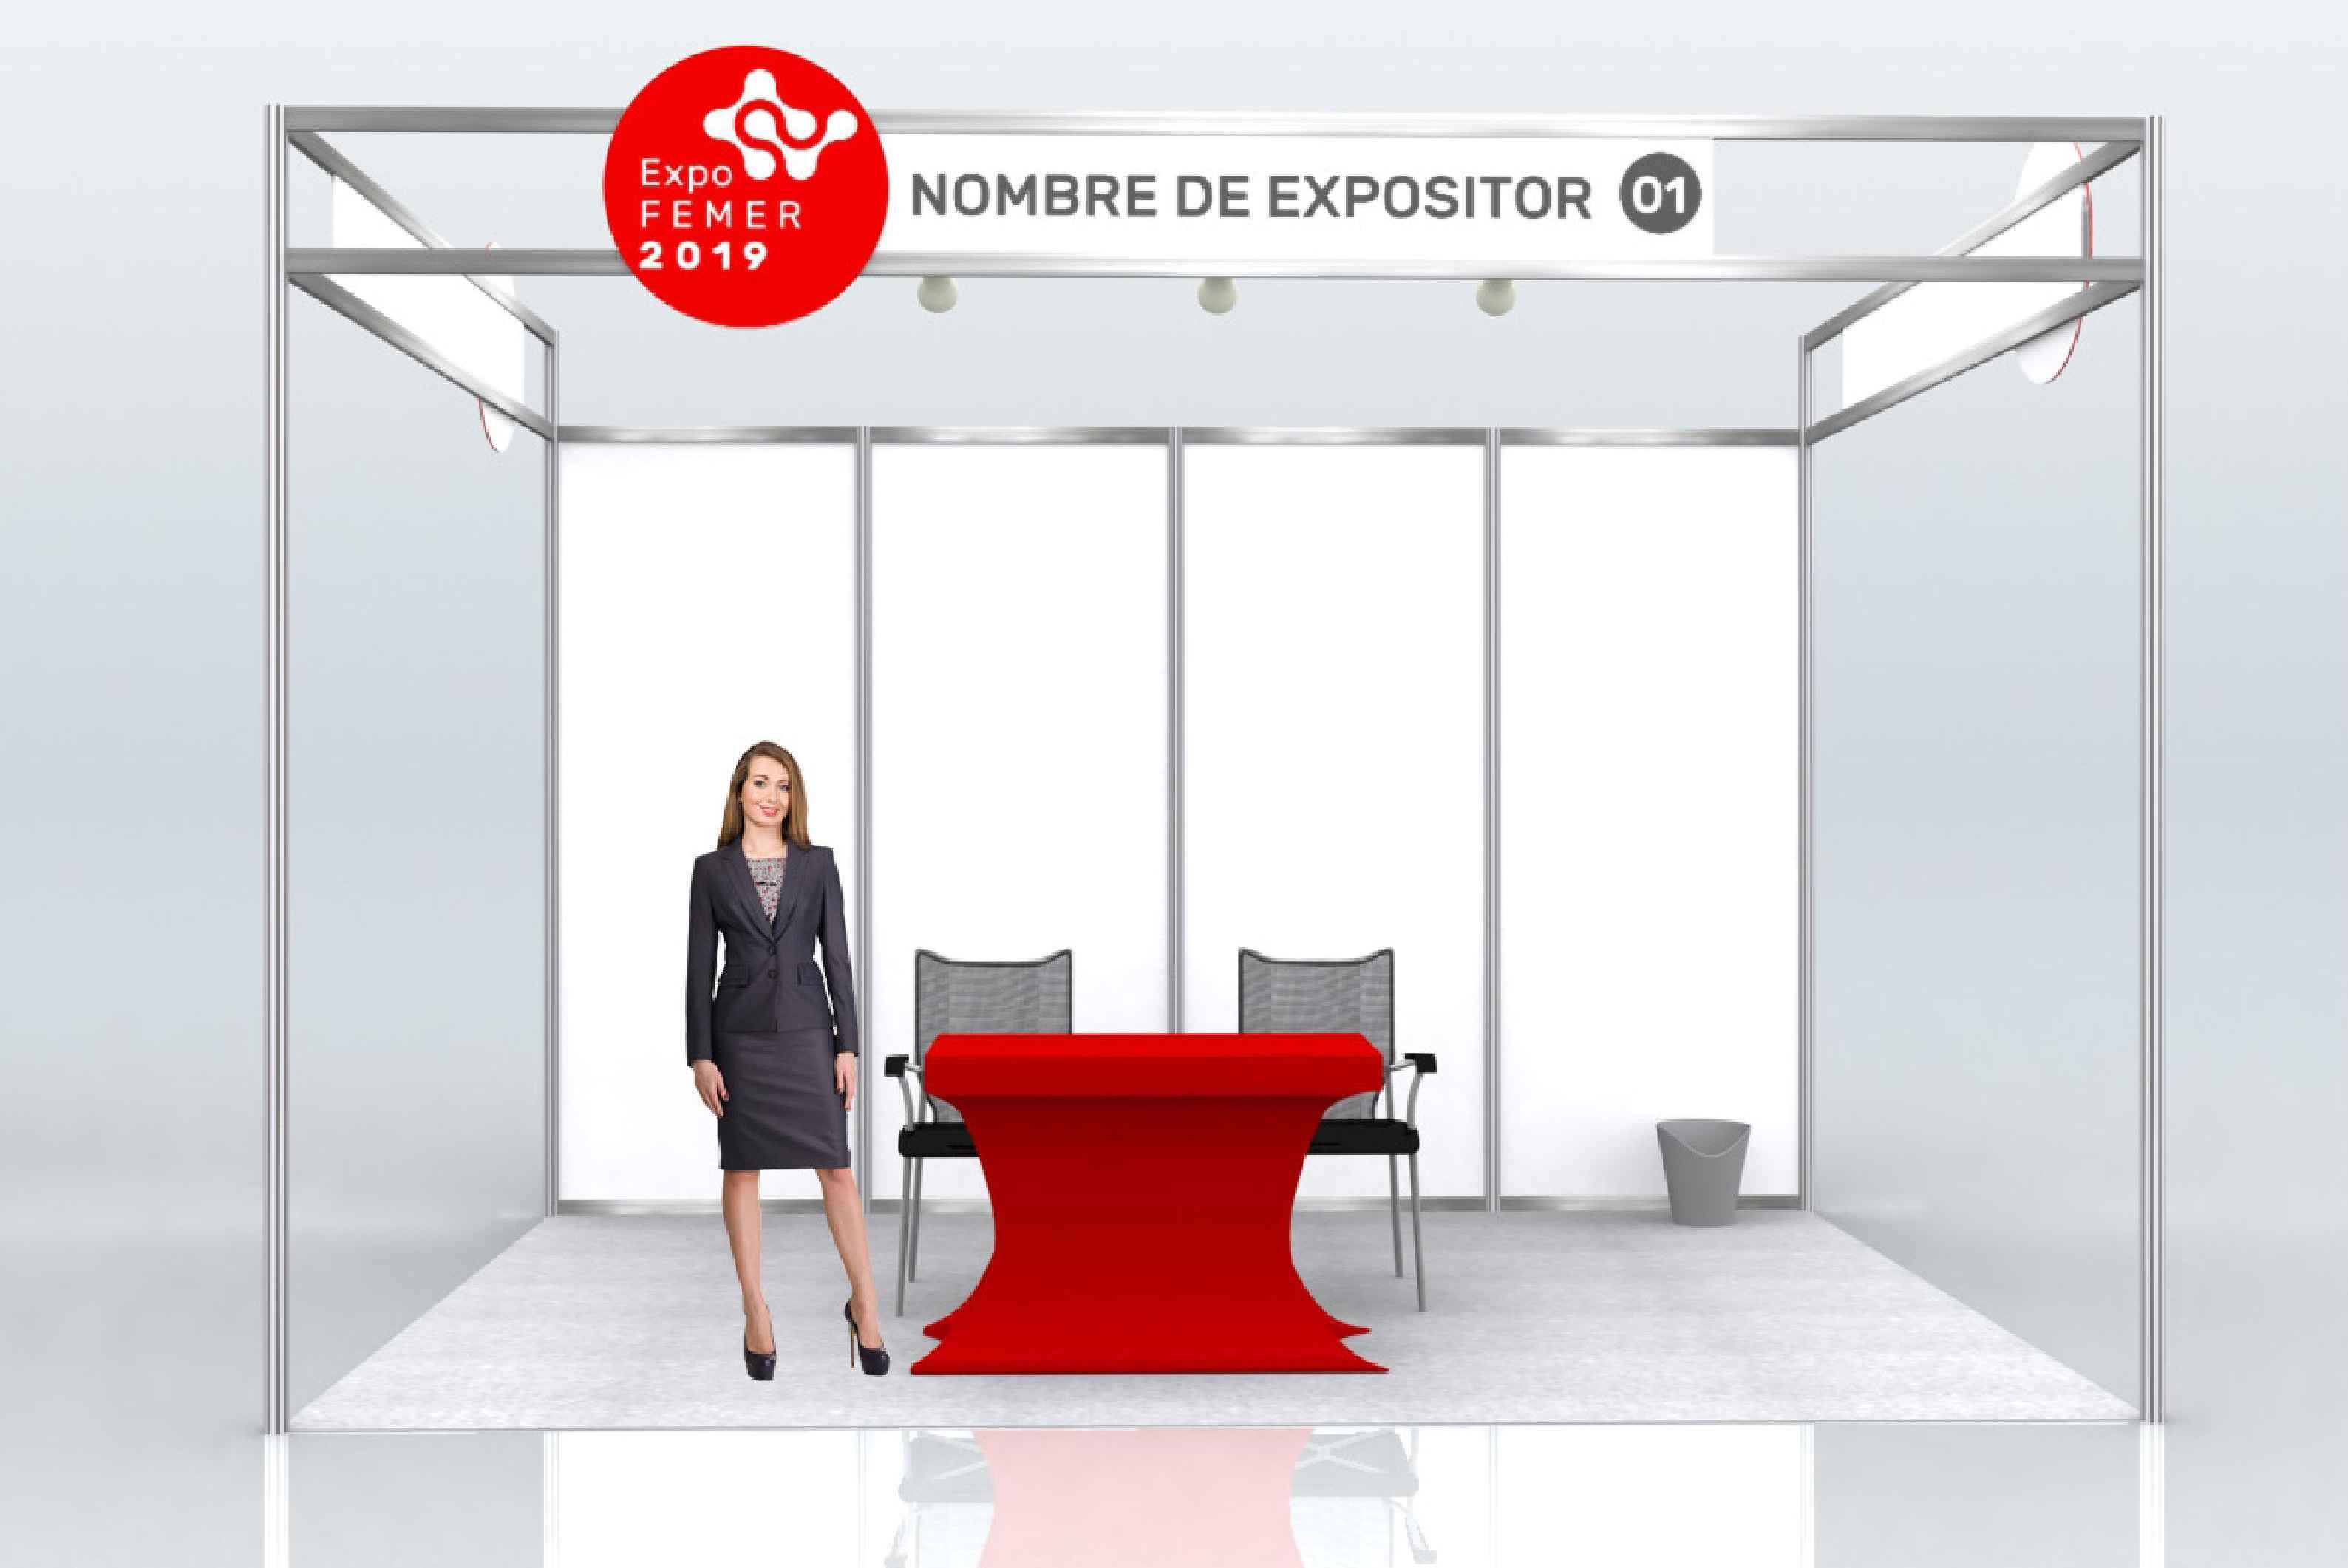 Stand Expo Femer 2019